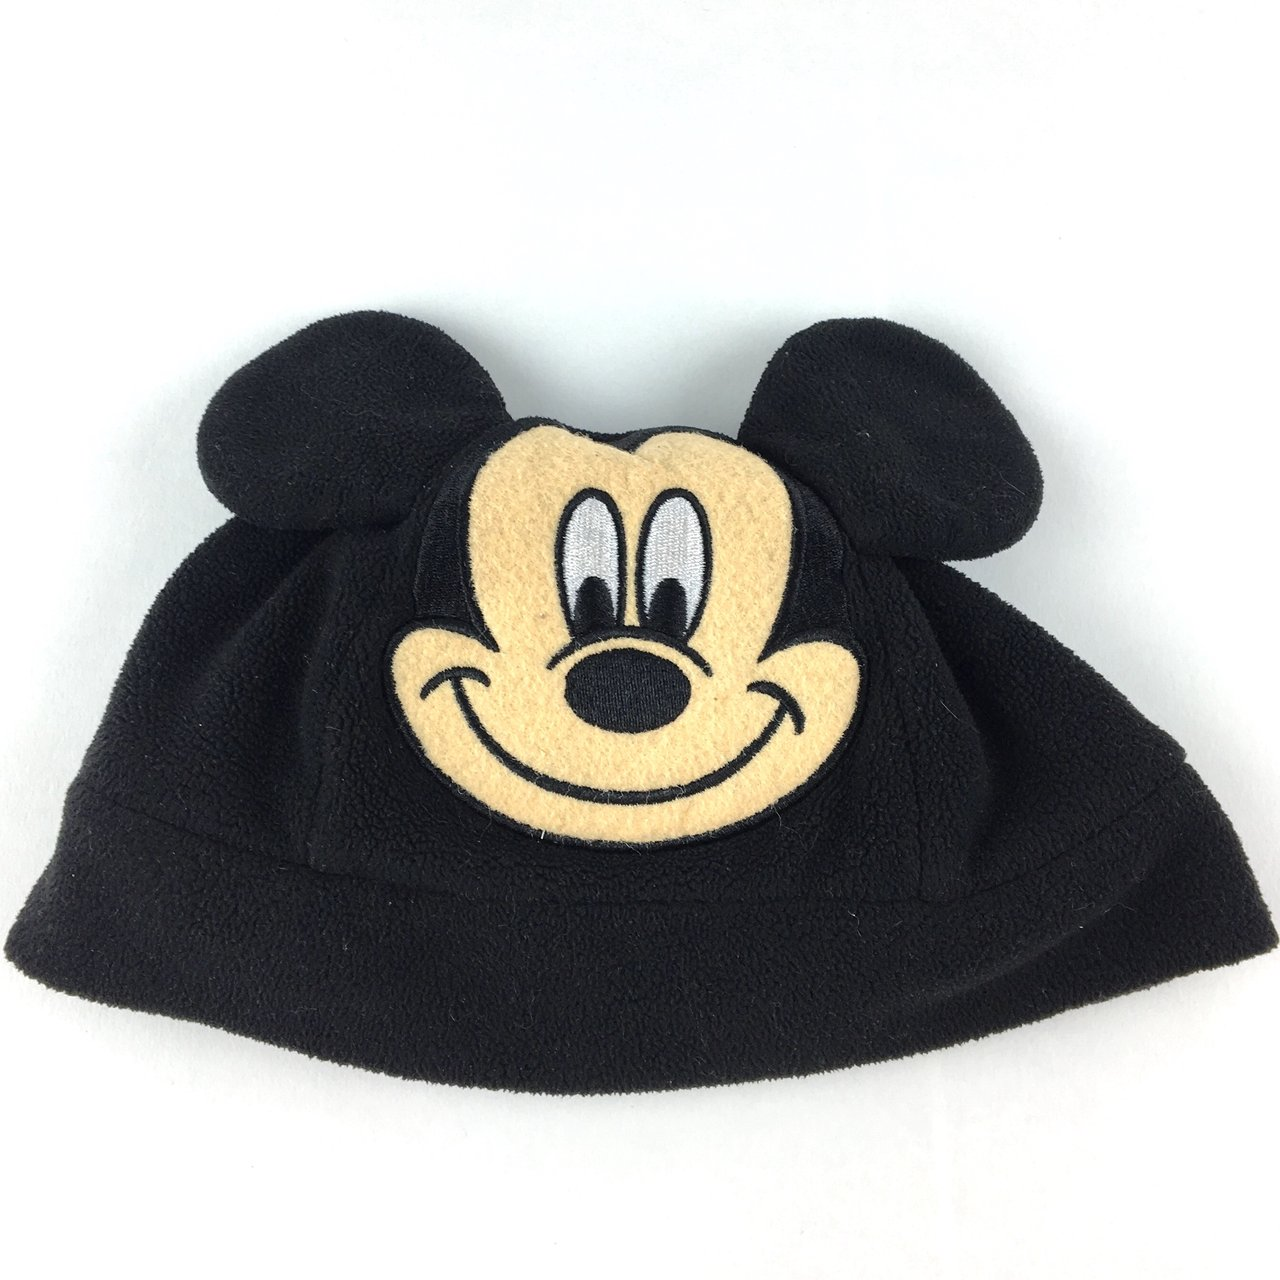 209greatbeginnings. 20 days ago. United States. Disney Parks Authentic  Originals Mickey Mouse Ears Toddler Size Beanie 58ff500534d2